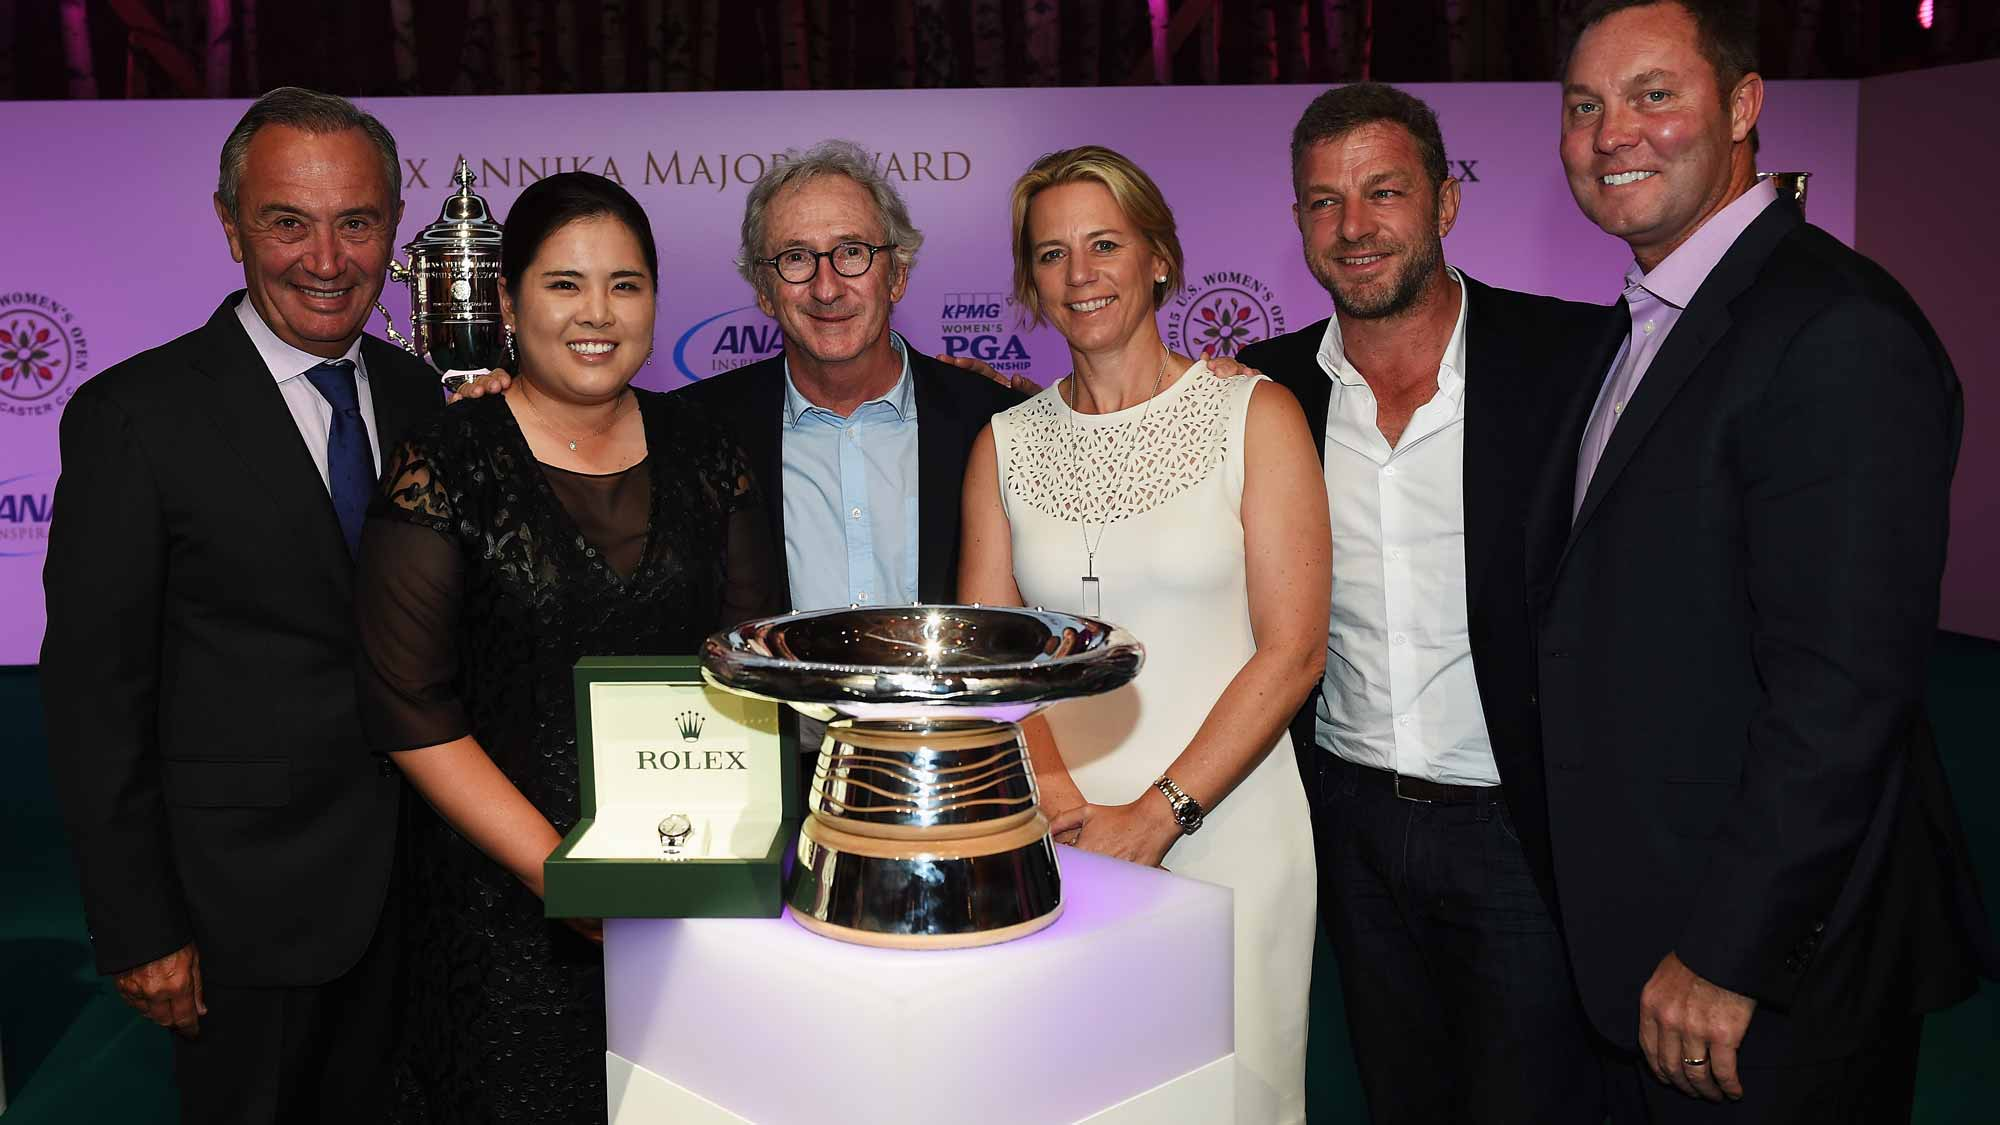 Jean-Noel Bioul, Inbee Park, Frank Riboud, Annika Sorestam, Jaques Bungert, and Mike Whan, LPGA Commissionerat the Rolex Award ceremony after the third round of the Evian Championship